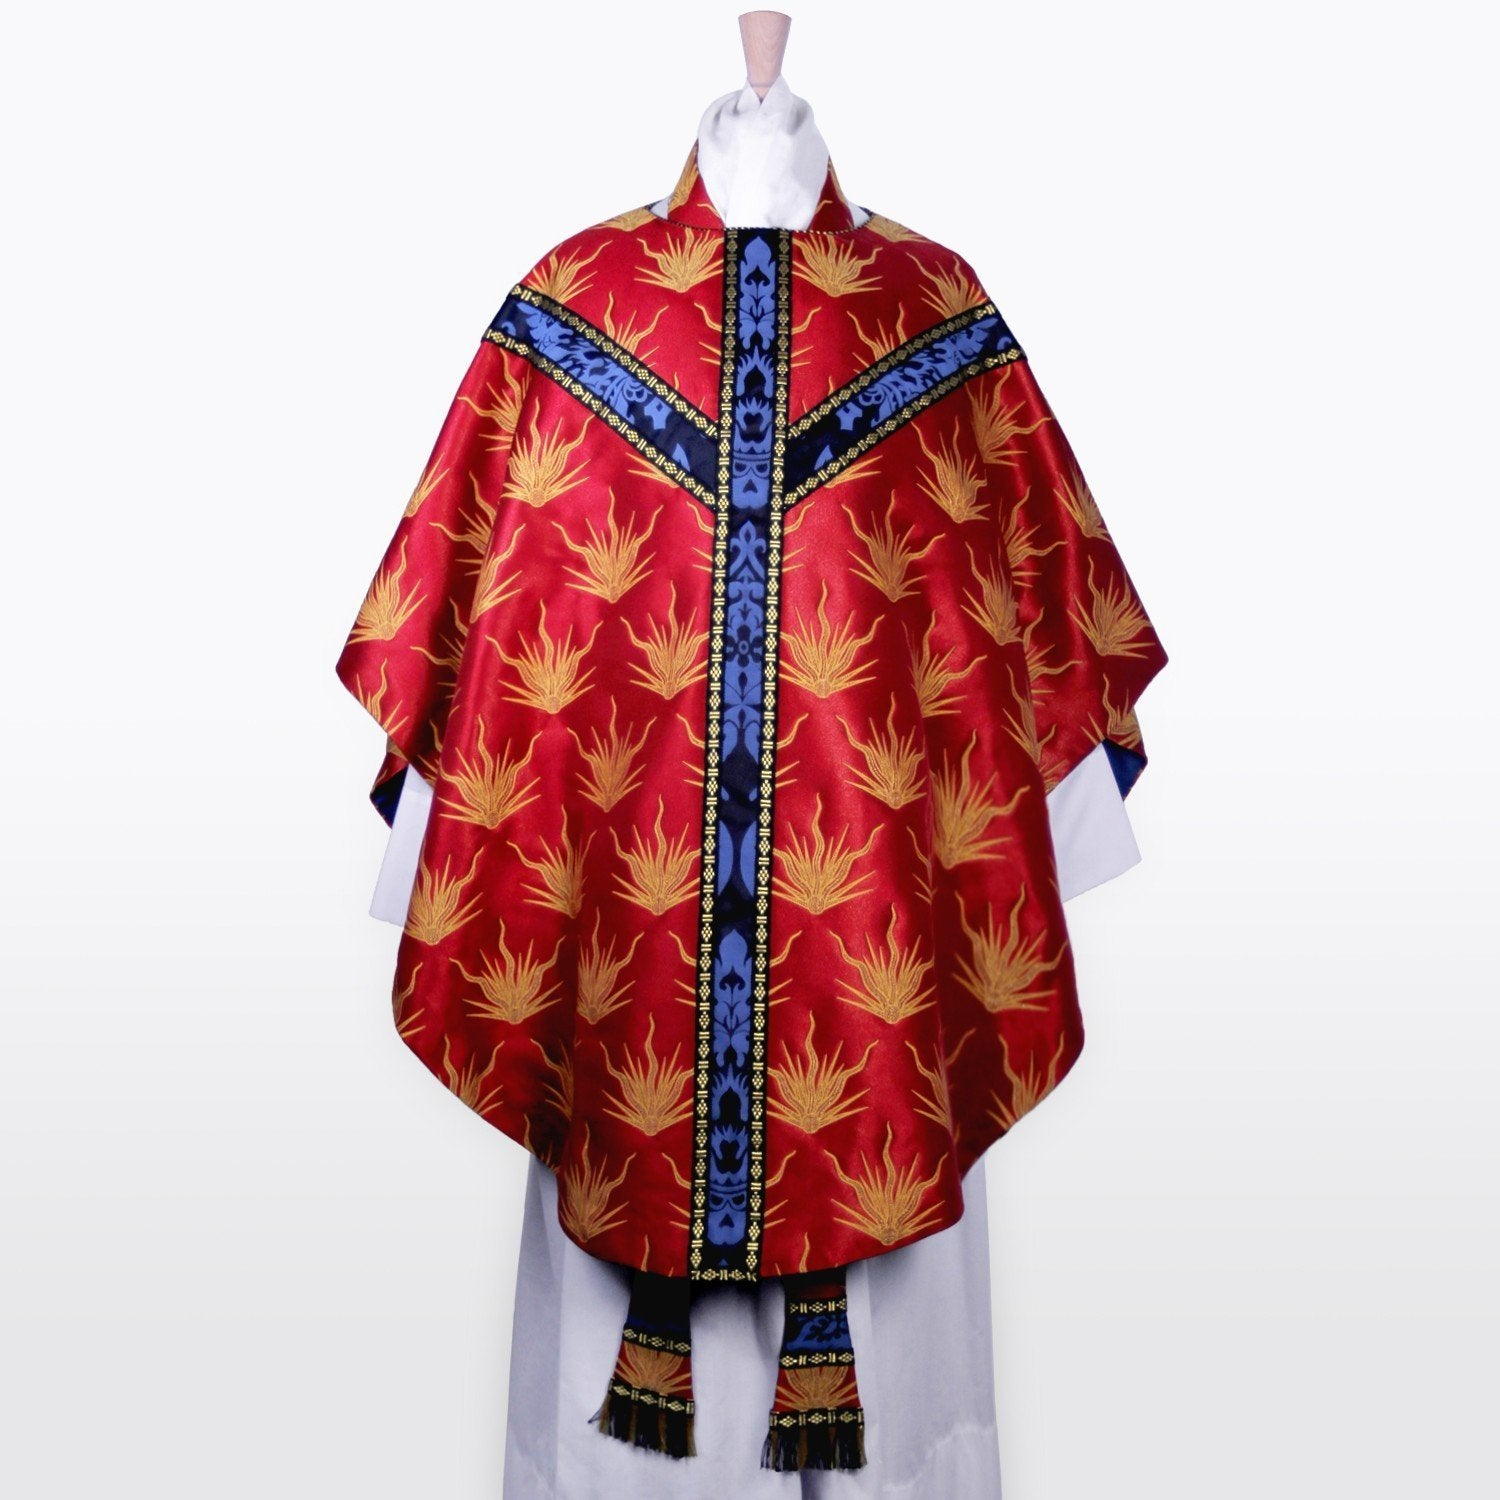 Sarum Style Chasuble in Red Pentecost Brocade - Watts & Co. (international)